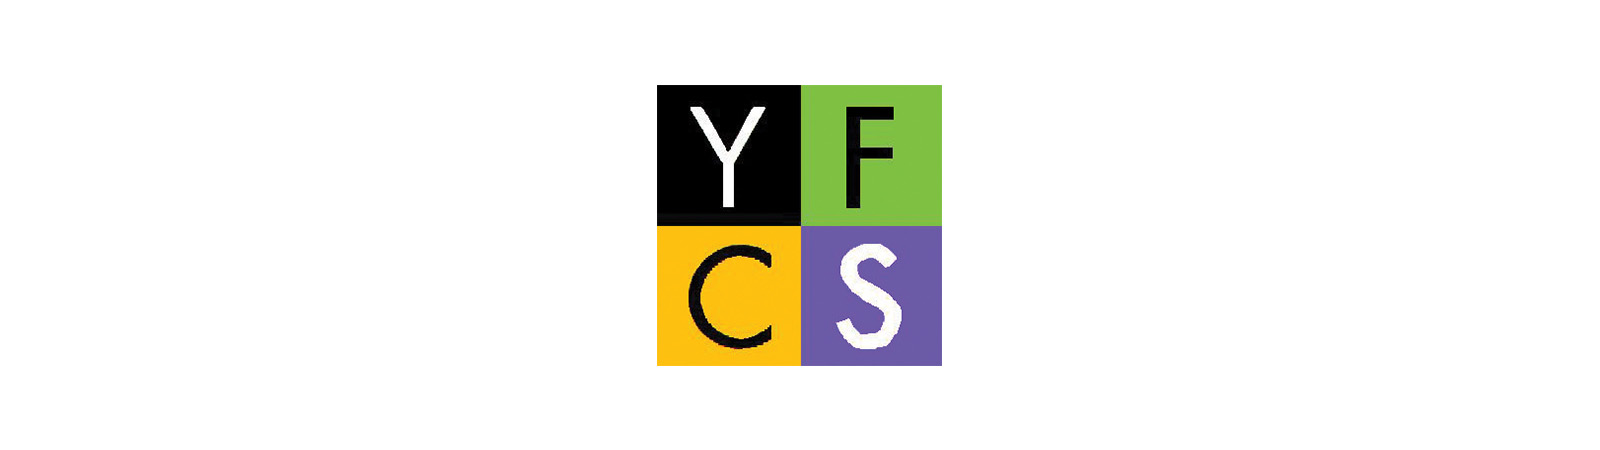 Youth and Family Centered Services logo image